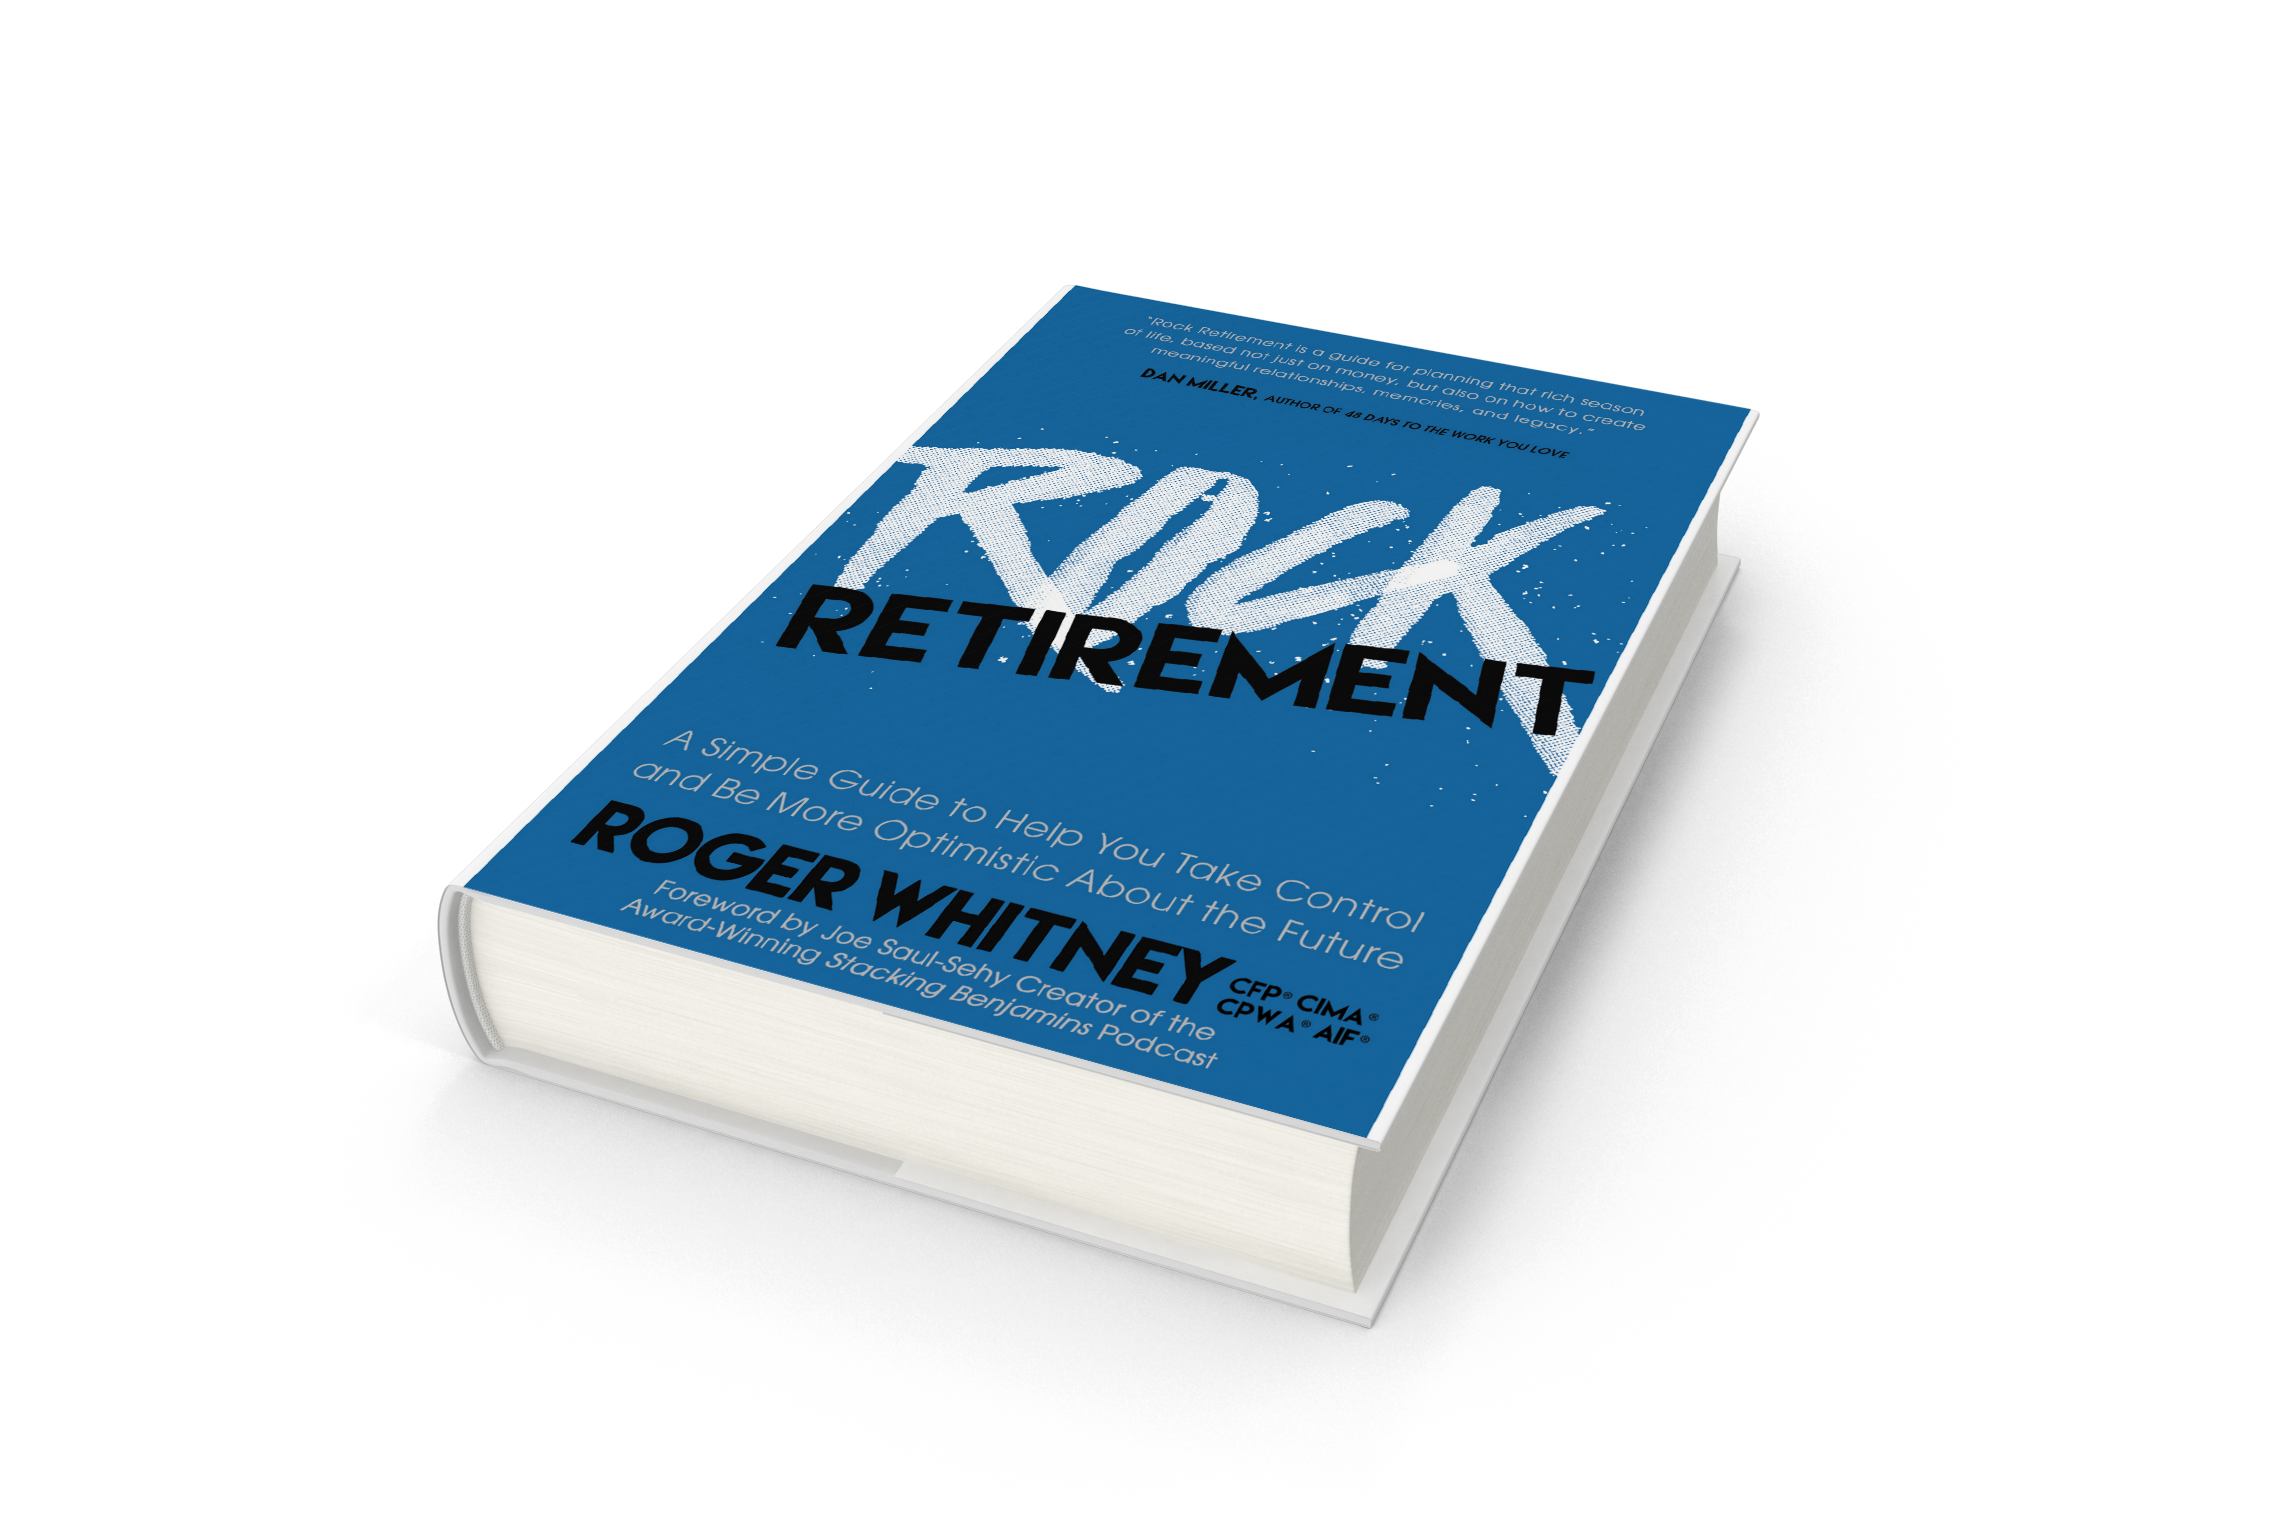 Rock Retirement: - A Simple Guide to Help You Take Control and Be More Optimistic About the Future